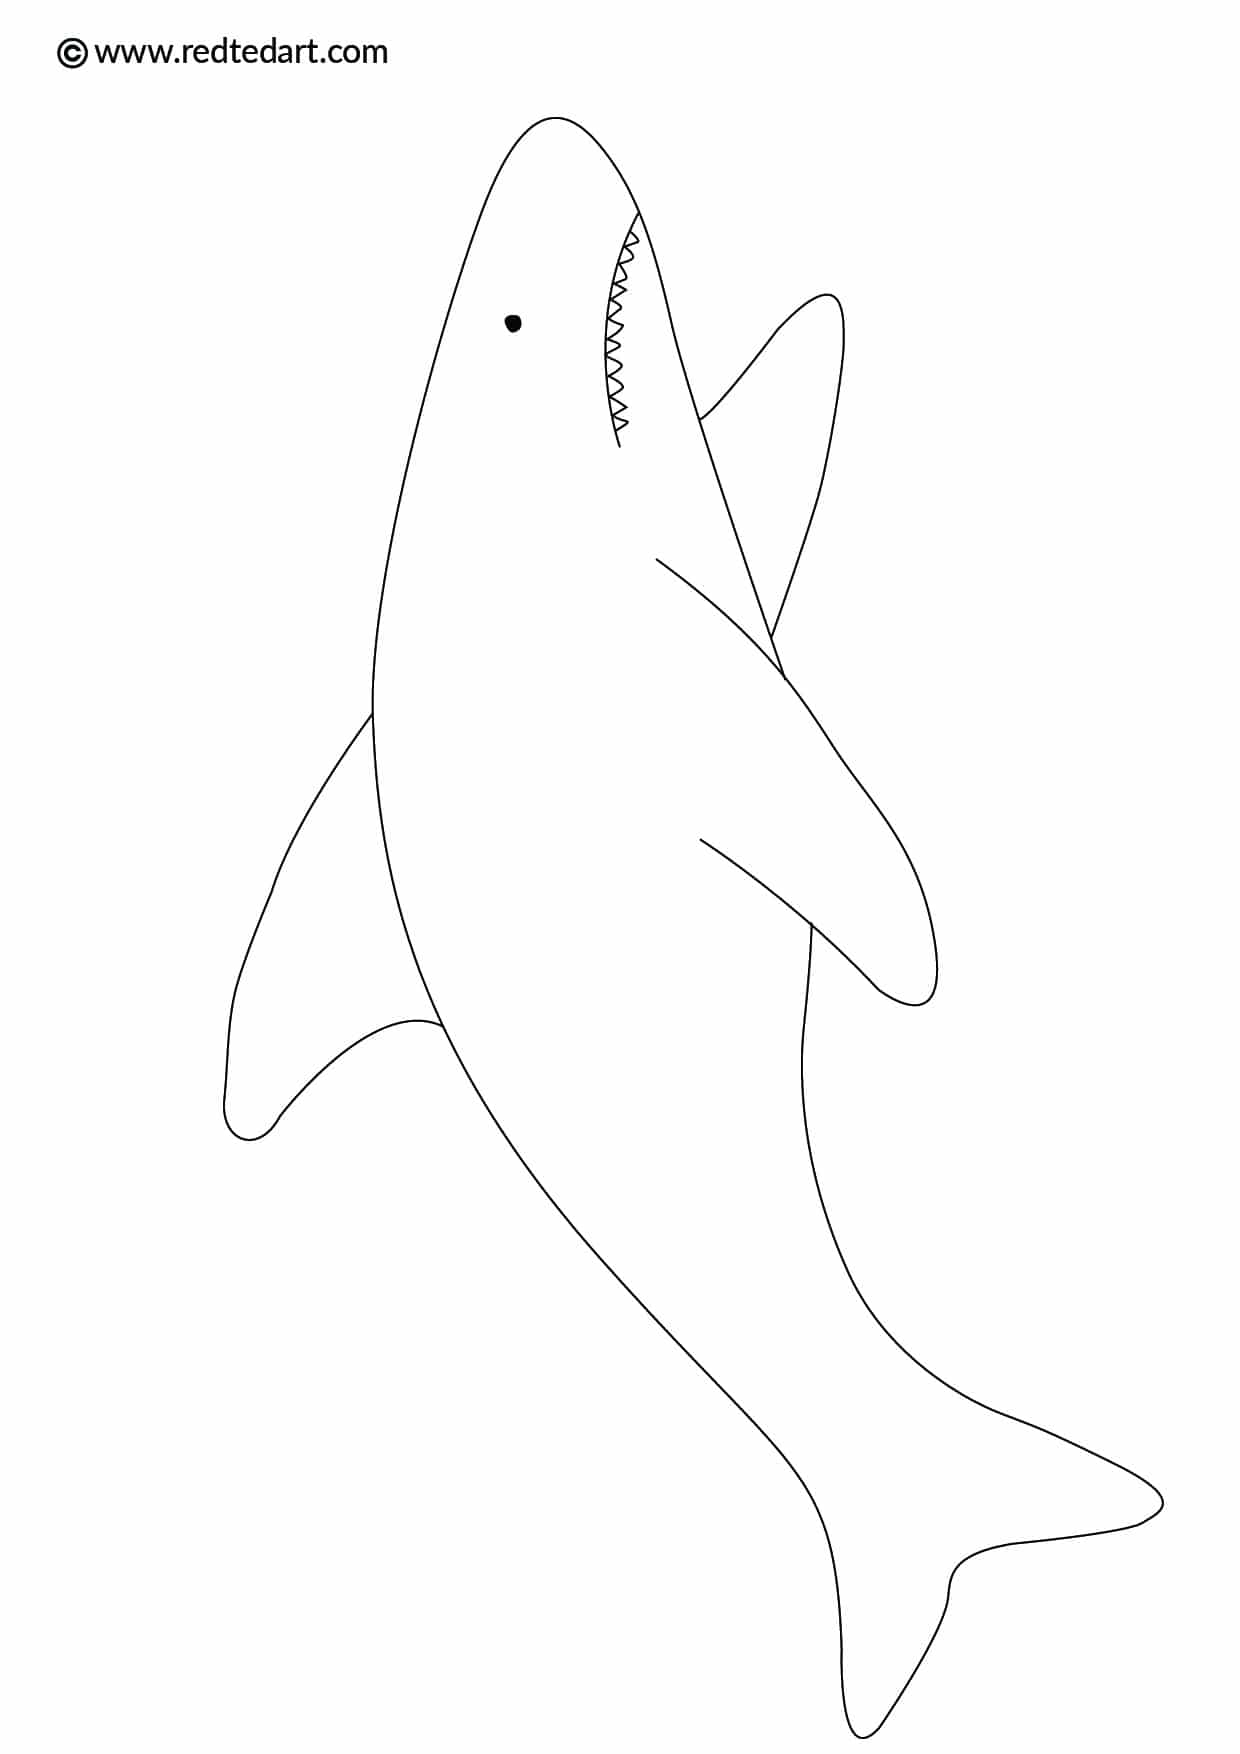 Shark Coloring Pages for Kids - Red Ted Art's Blog